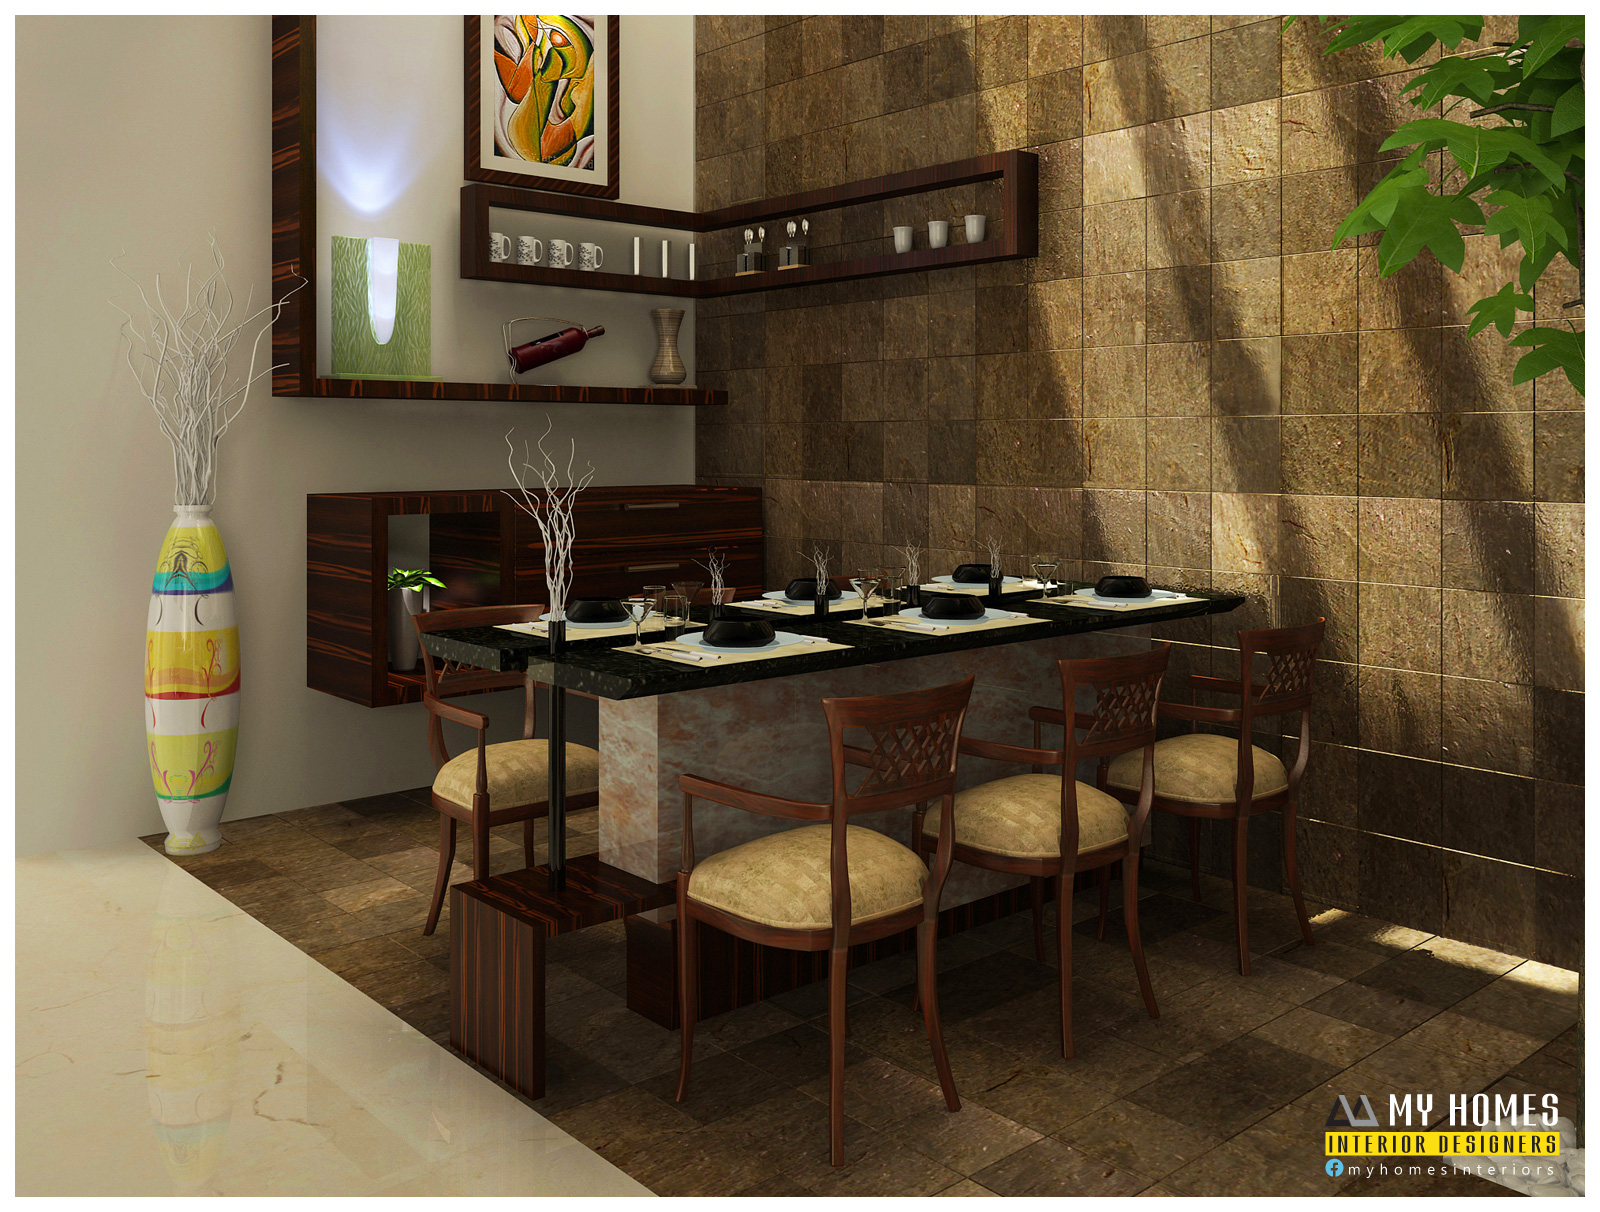 Interior design archives page 2 of 4 kerala interior for Dining room designs 2016